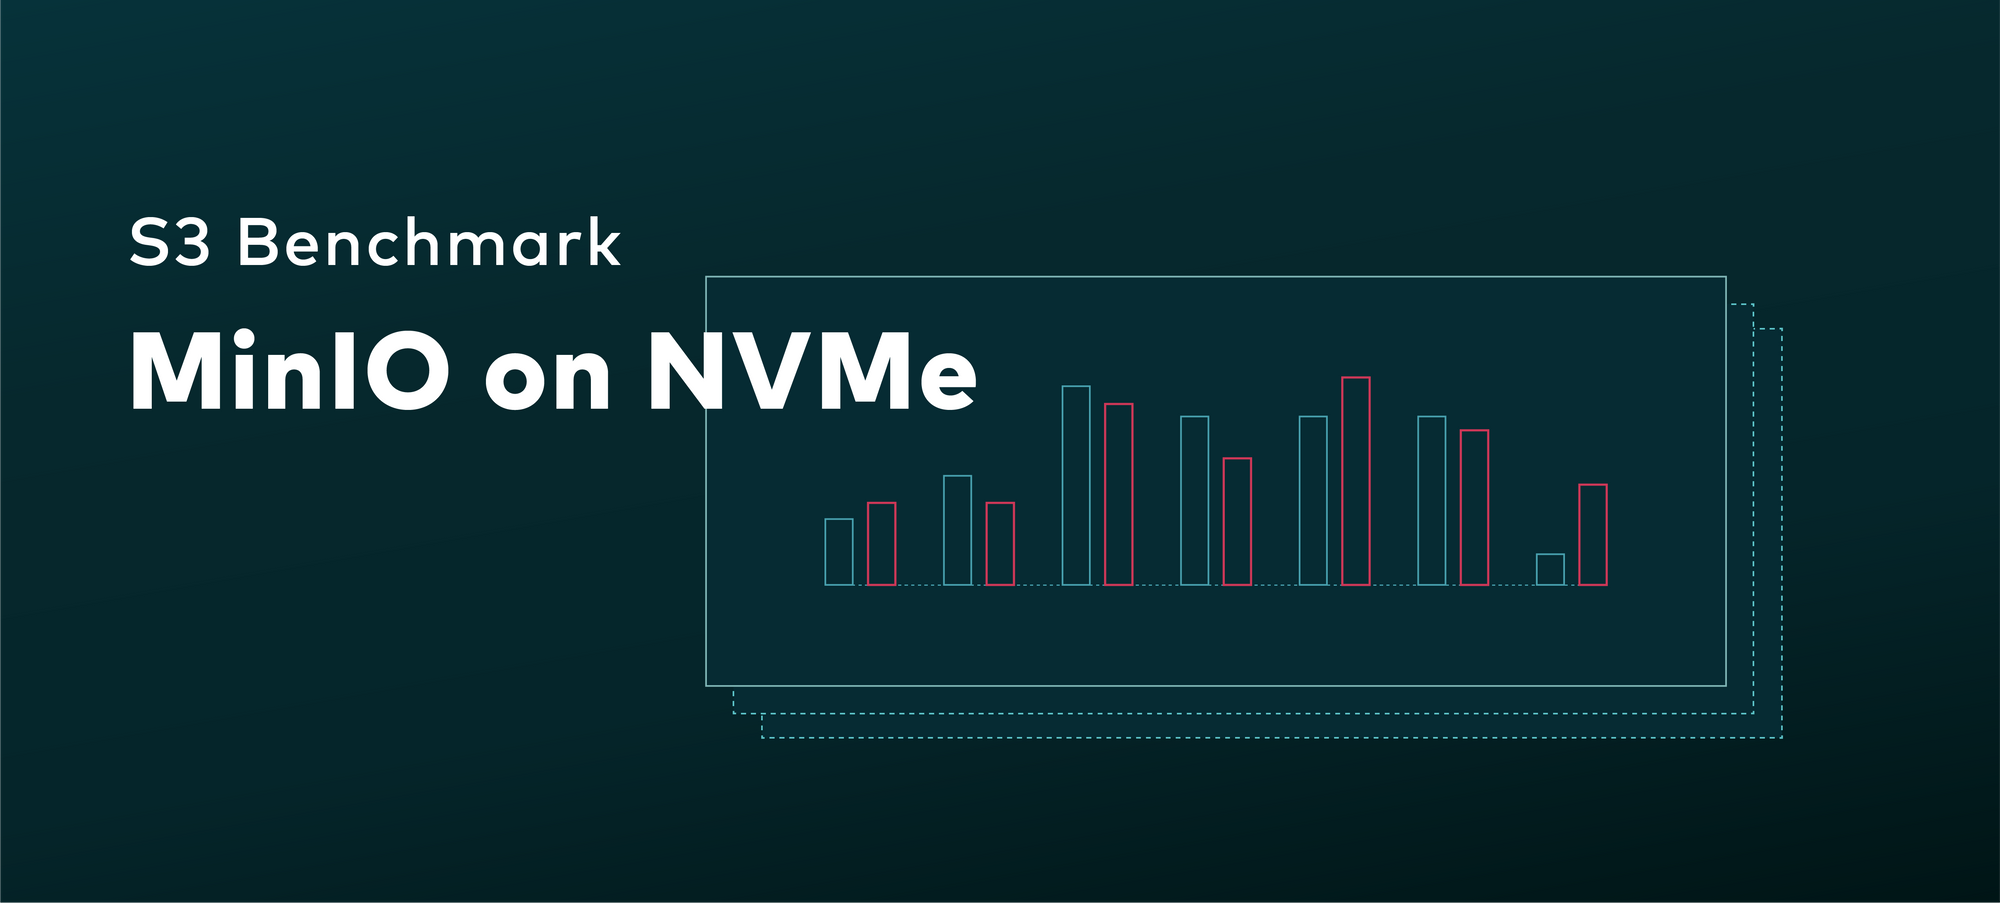 MinIO Performance with NVMe on the S3 Benchmark